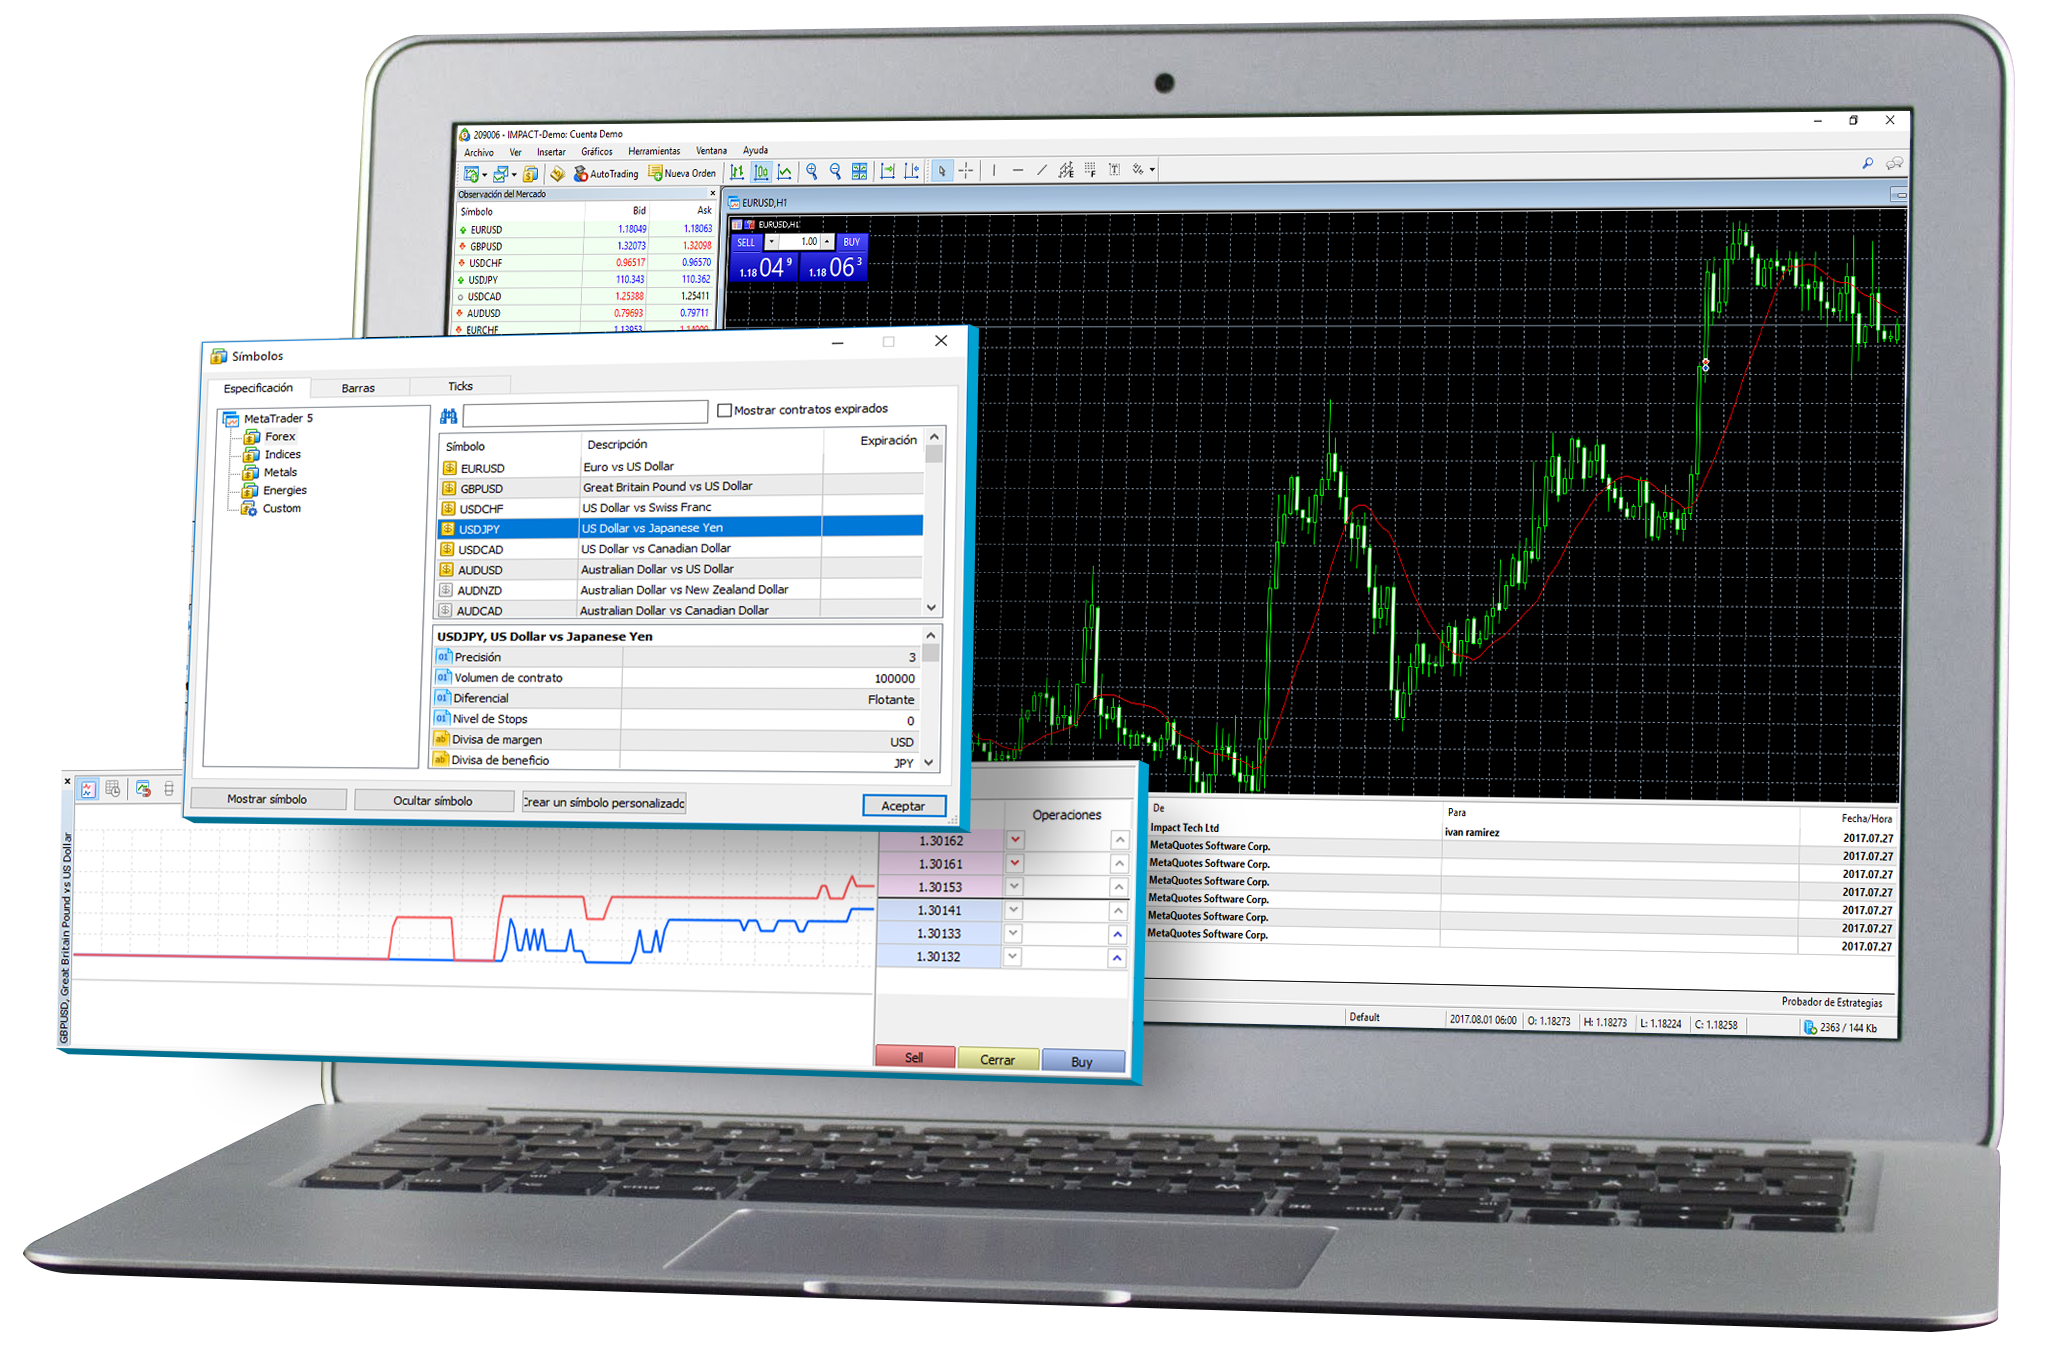 MetaTrader 5: Trading Platform for Forex and Stock Markets